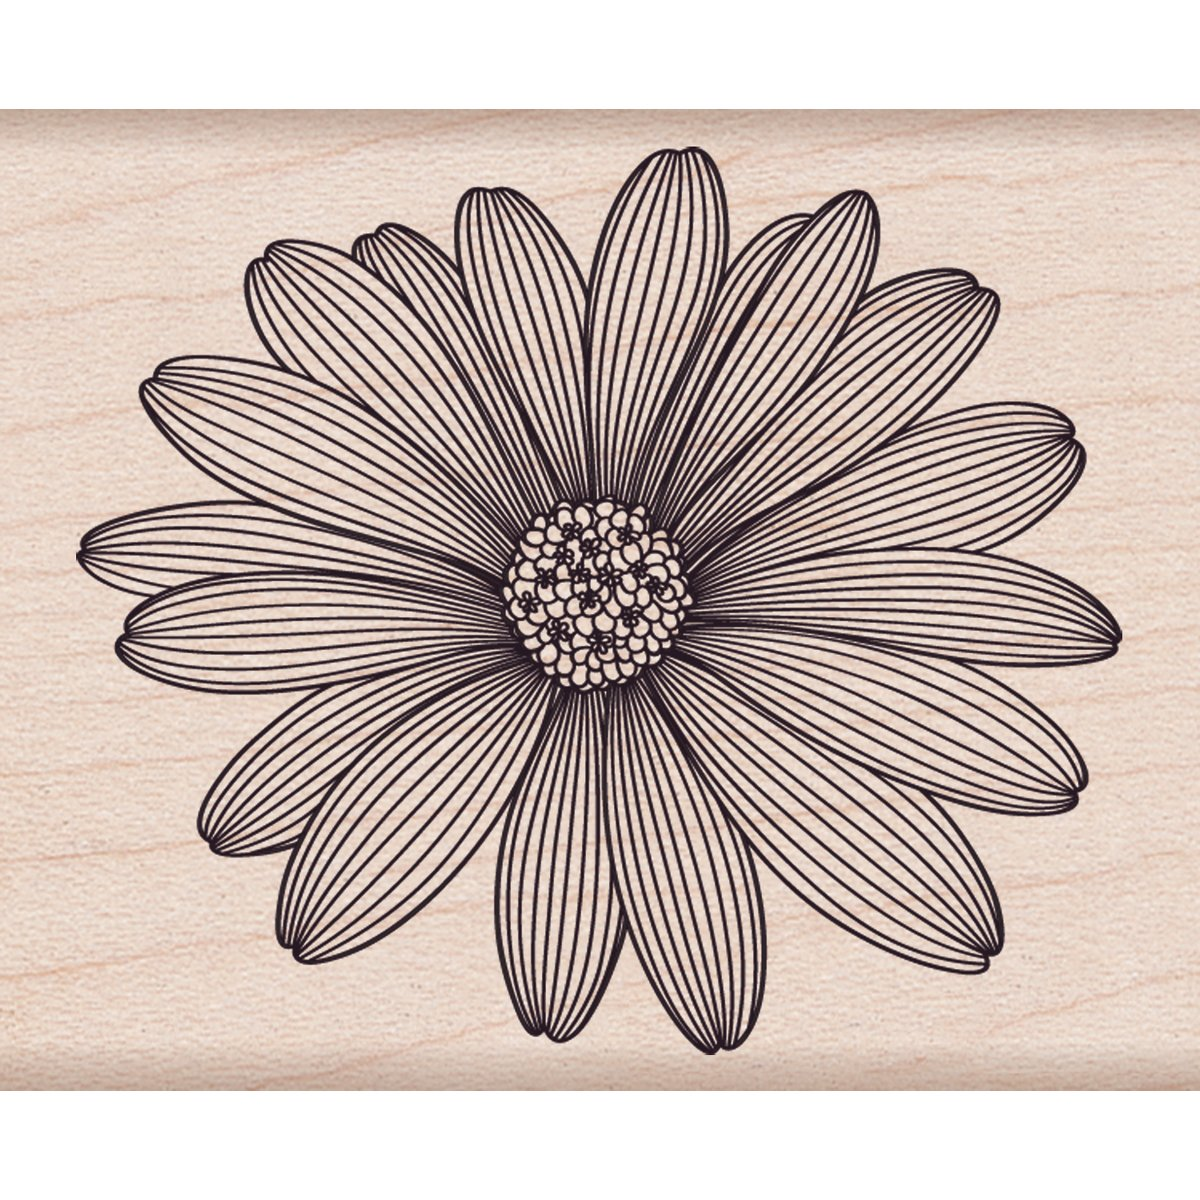 Hero Arts Etched Daisy Woodblock Rubber Stamp Inc. F5741